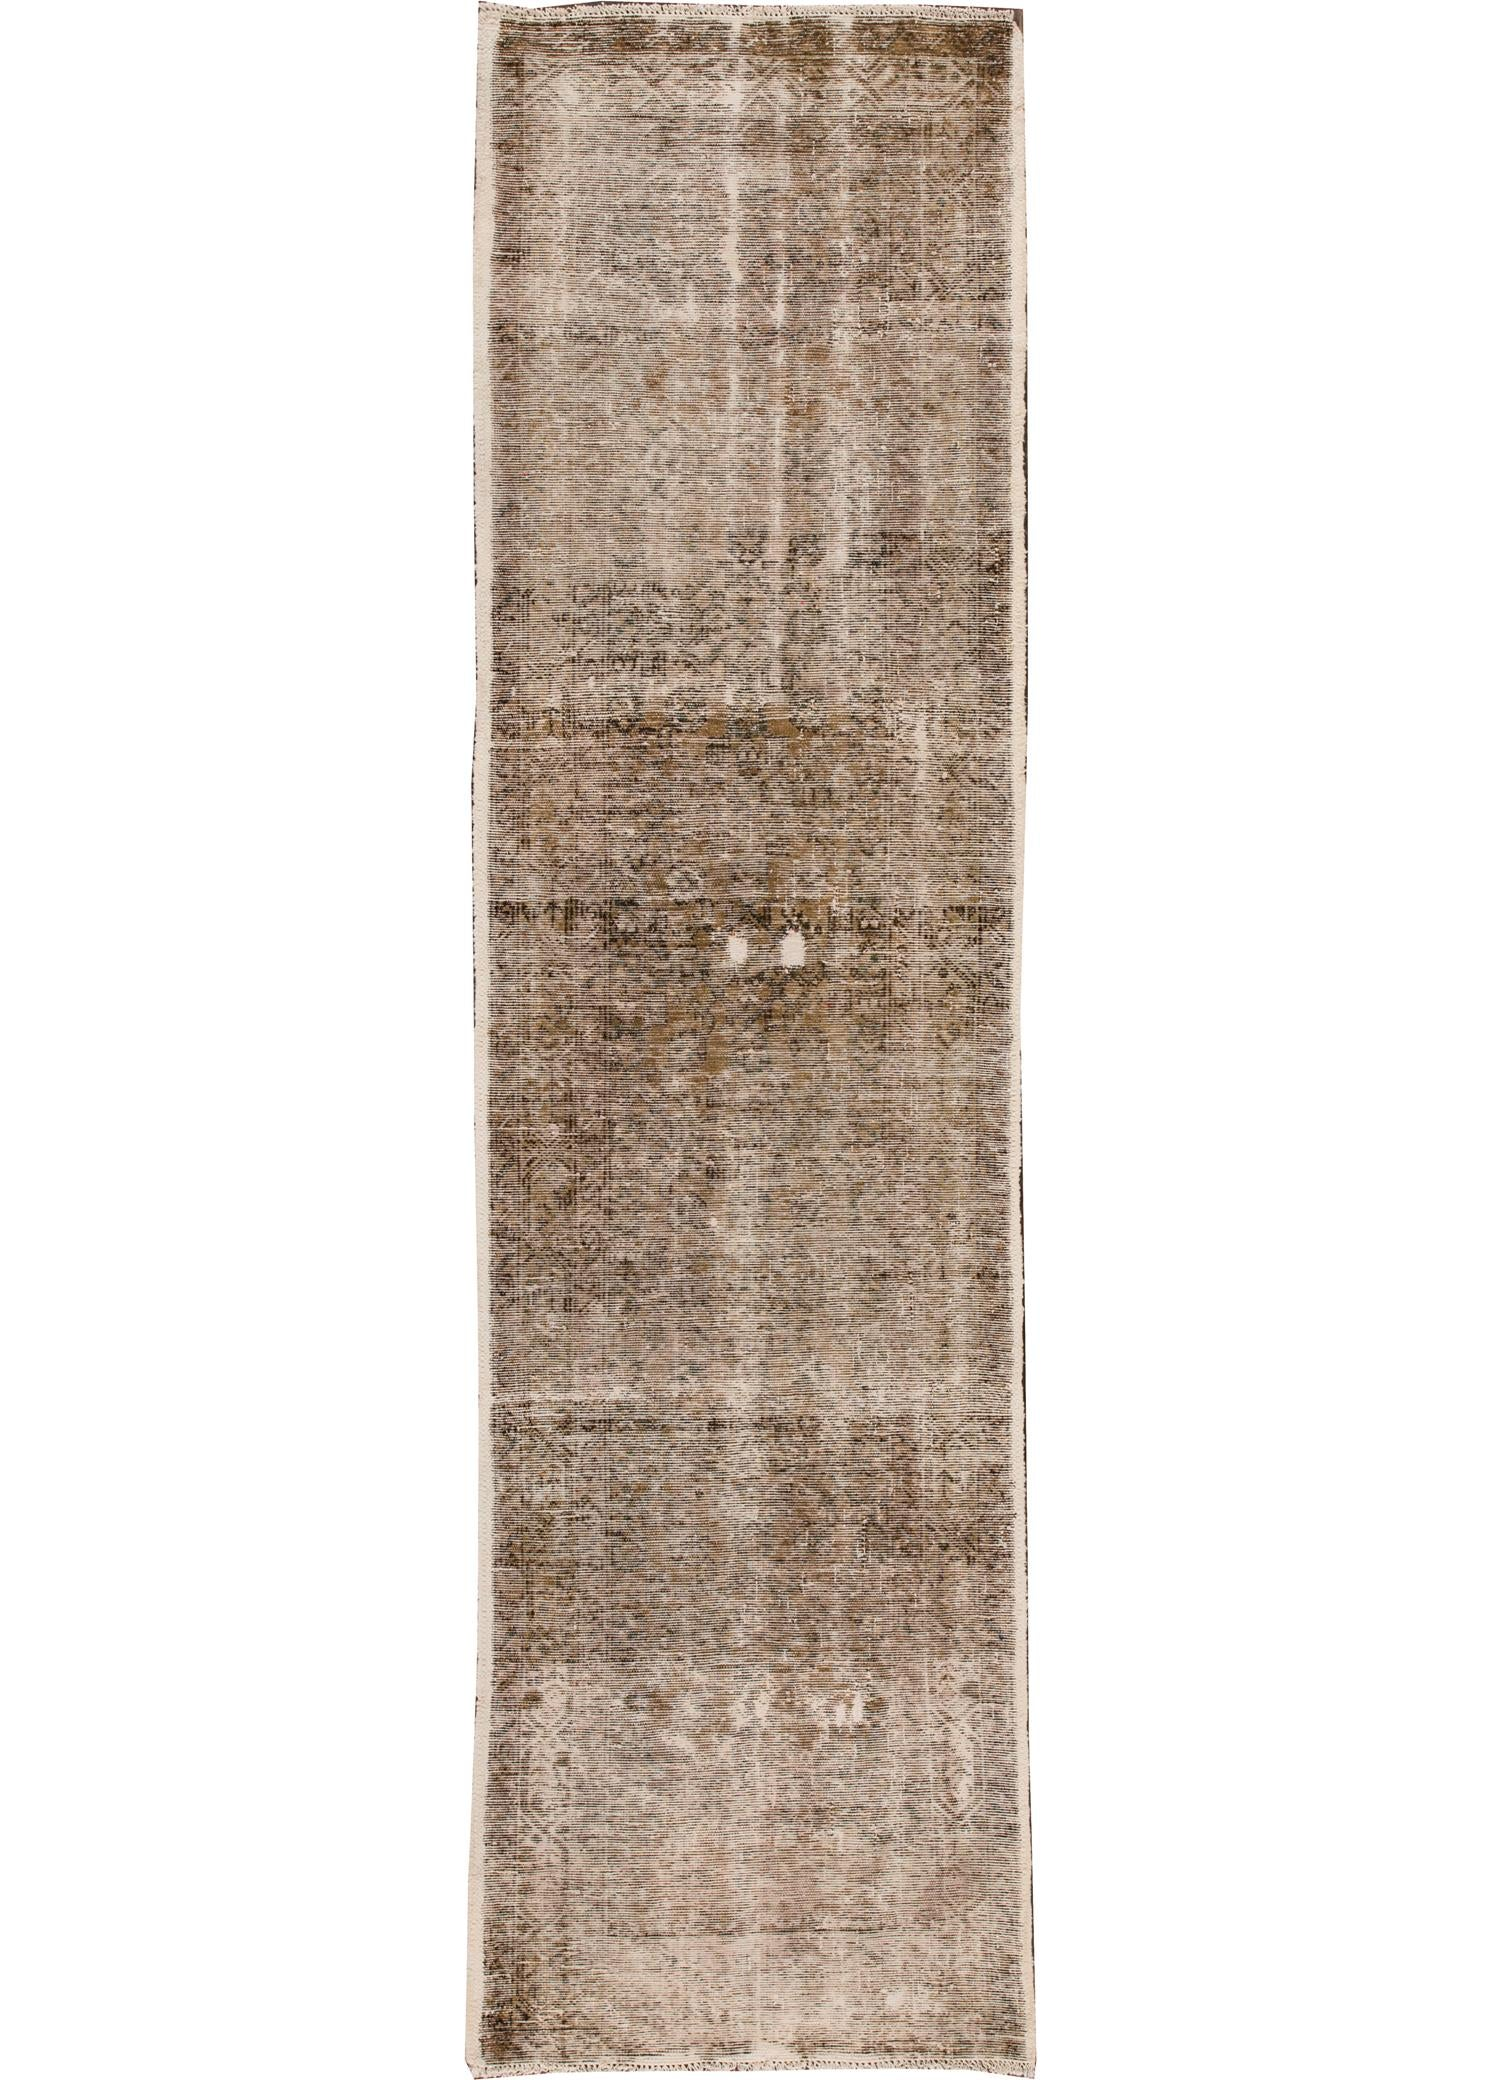 Vintage Distressed Kerman Rug, 3X10